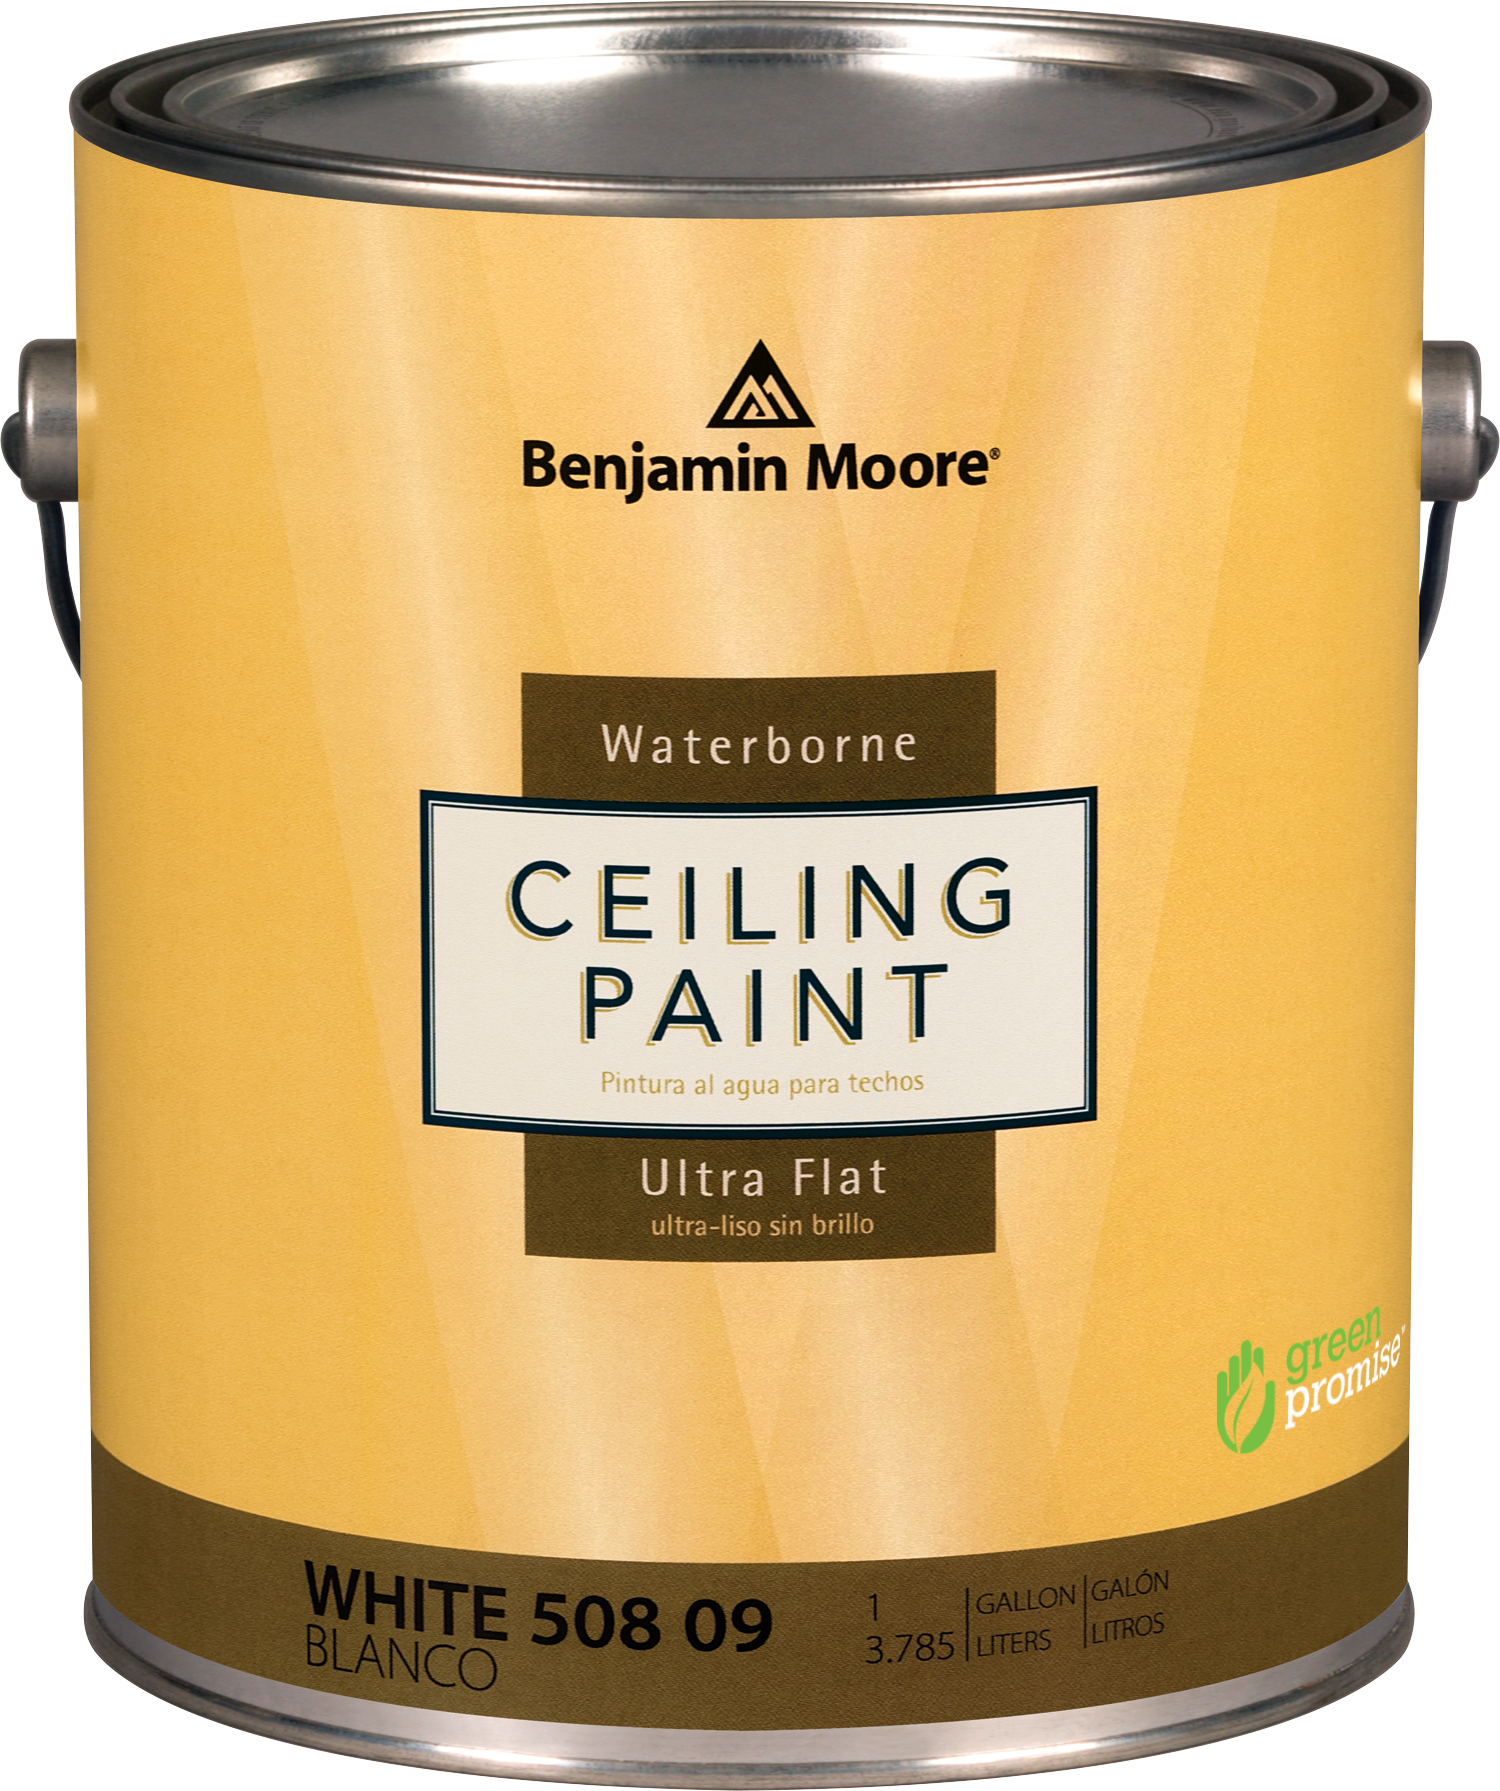 Benjamin Moore Waterborne Ceiling Paint Thybony Paint Supplies Chicago 39 S Own Since 1886